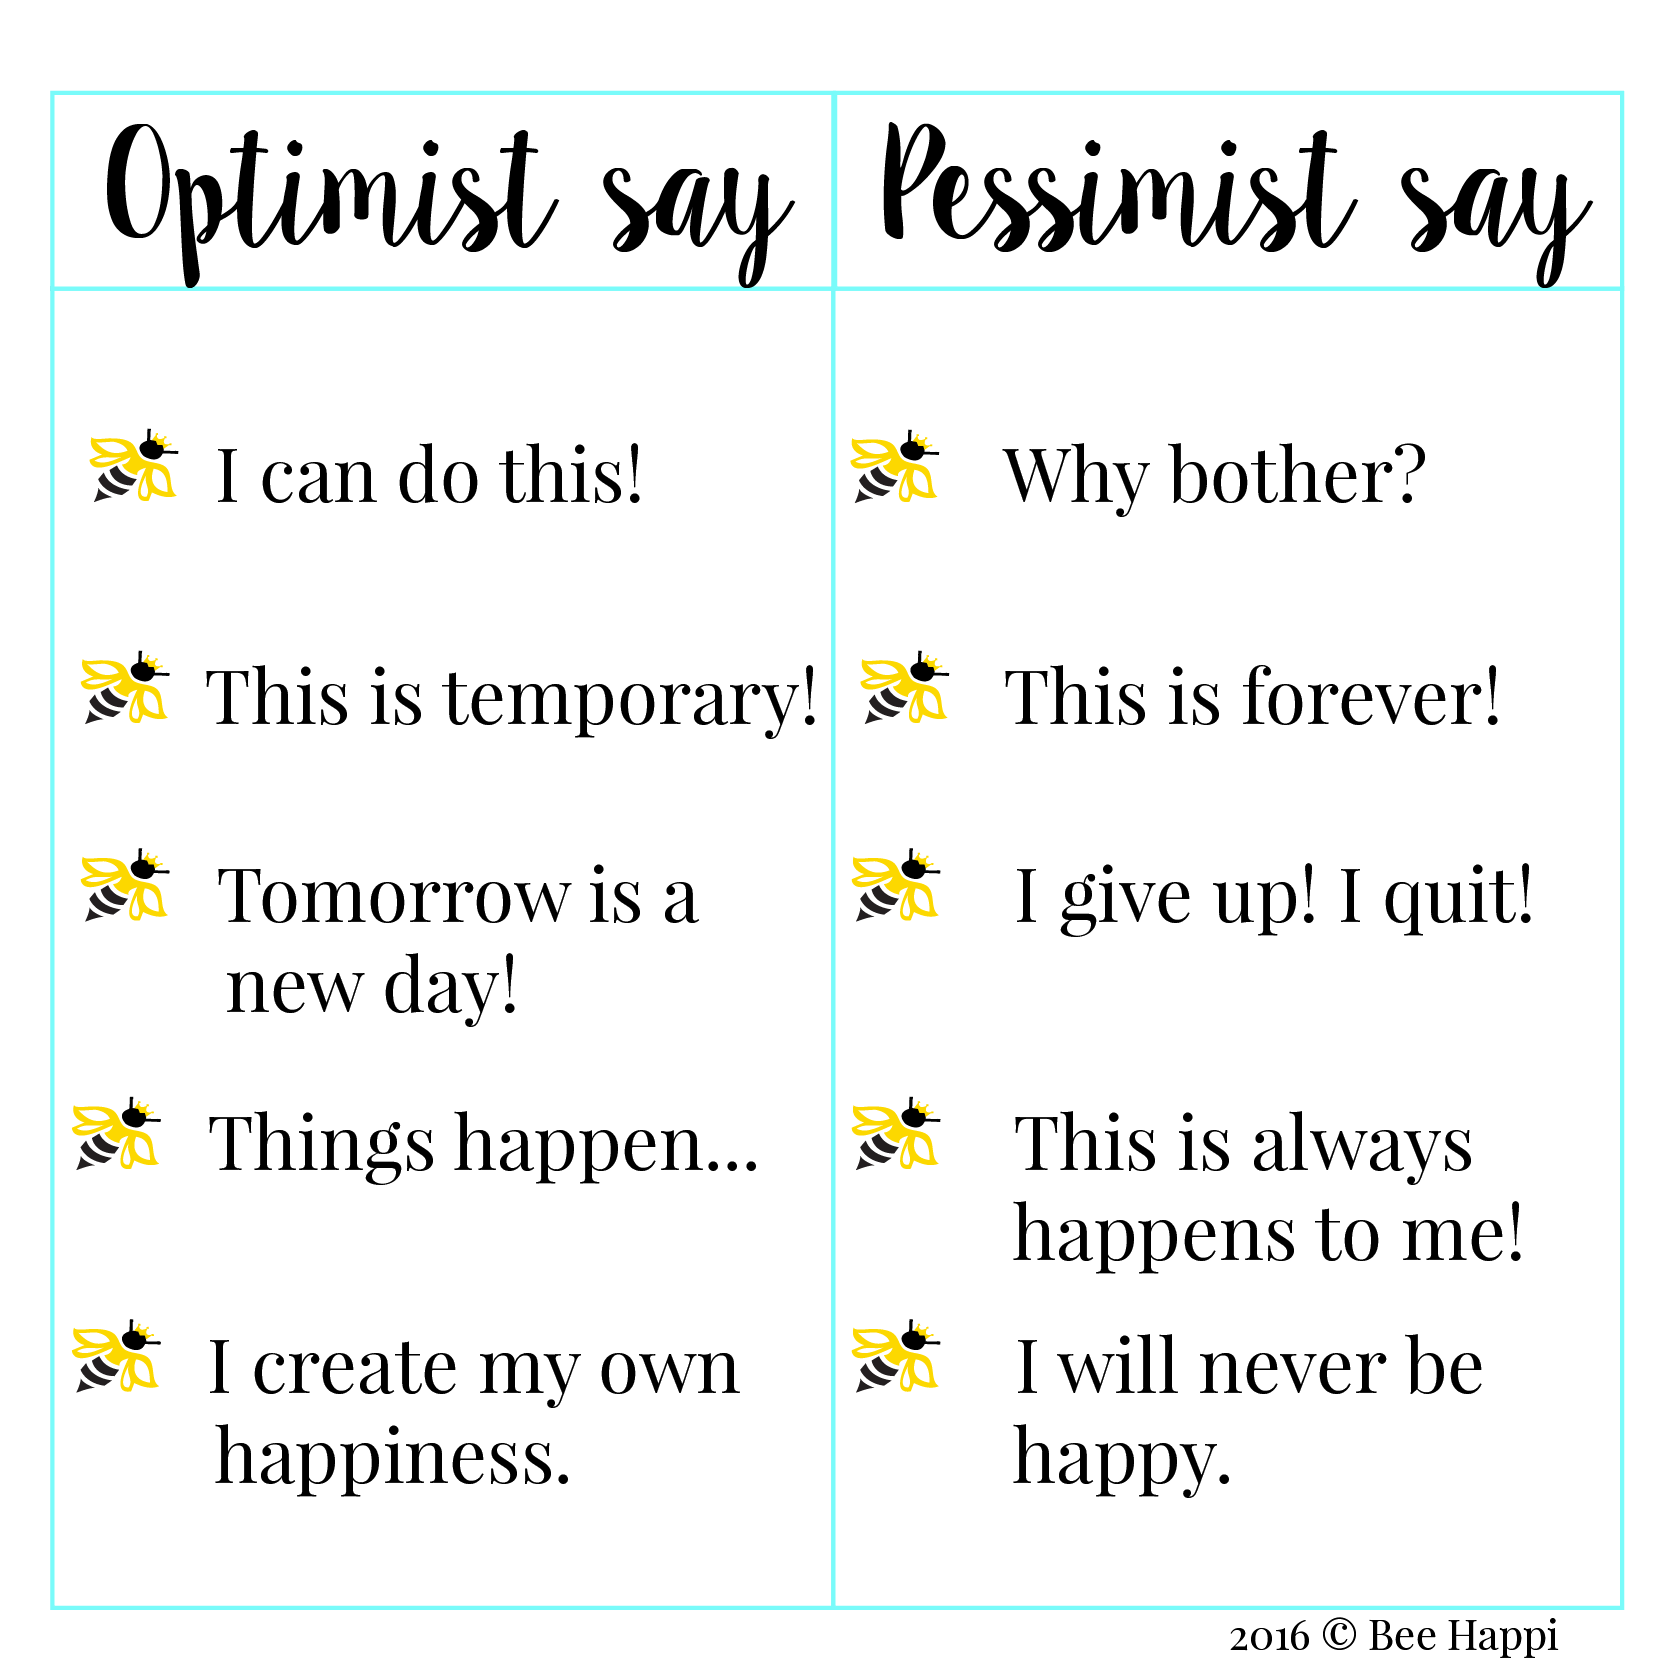 What is the difference between optimistic and pessimistic